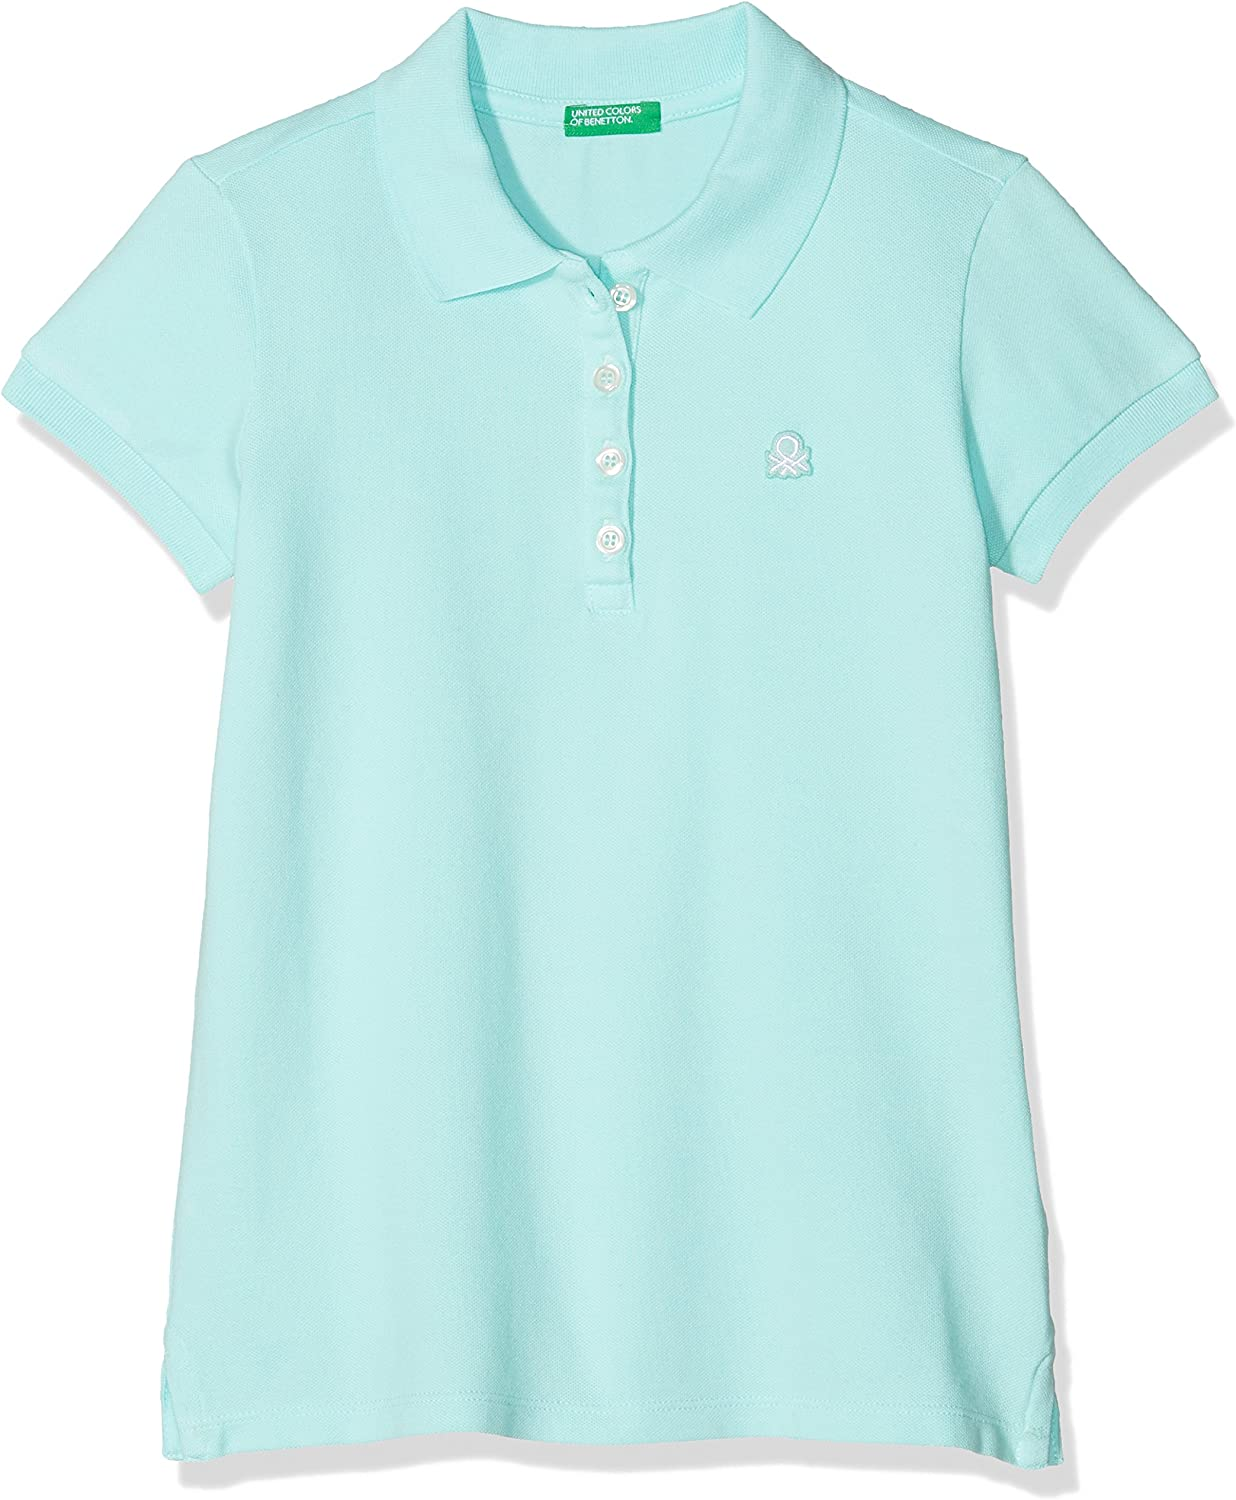 United Colors of Benetton H/s Polo Shirt, Azul (Aqua 13a), Talla ...